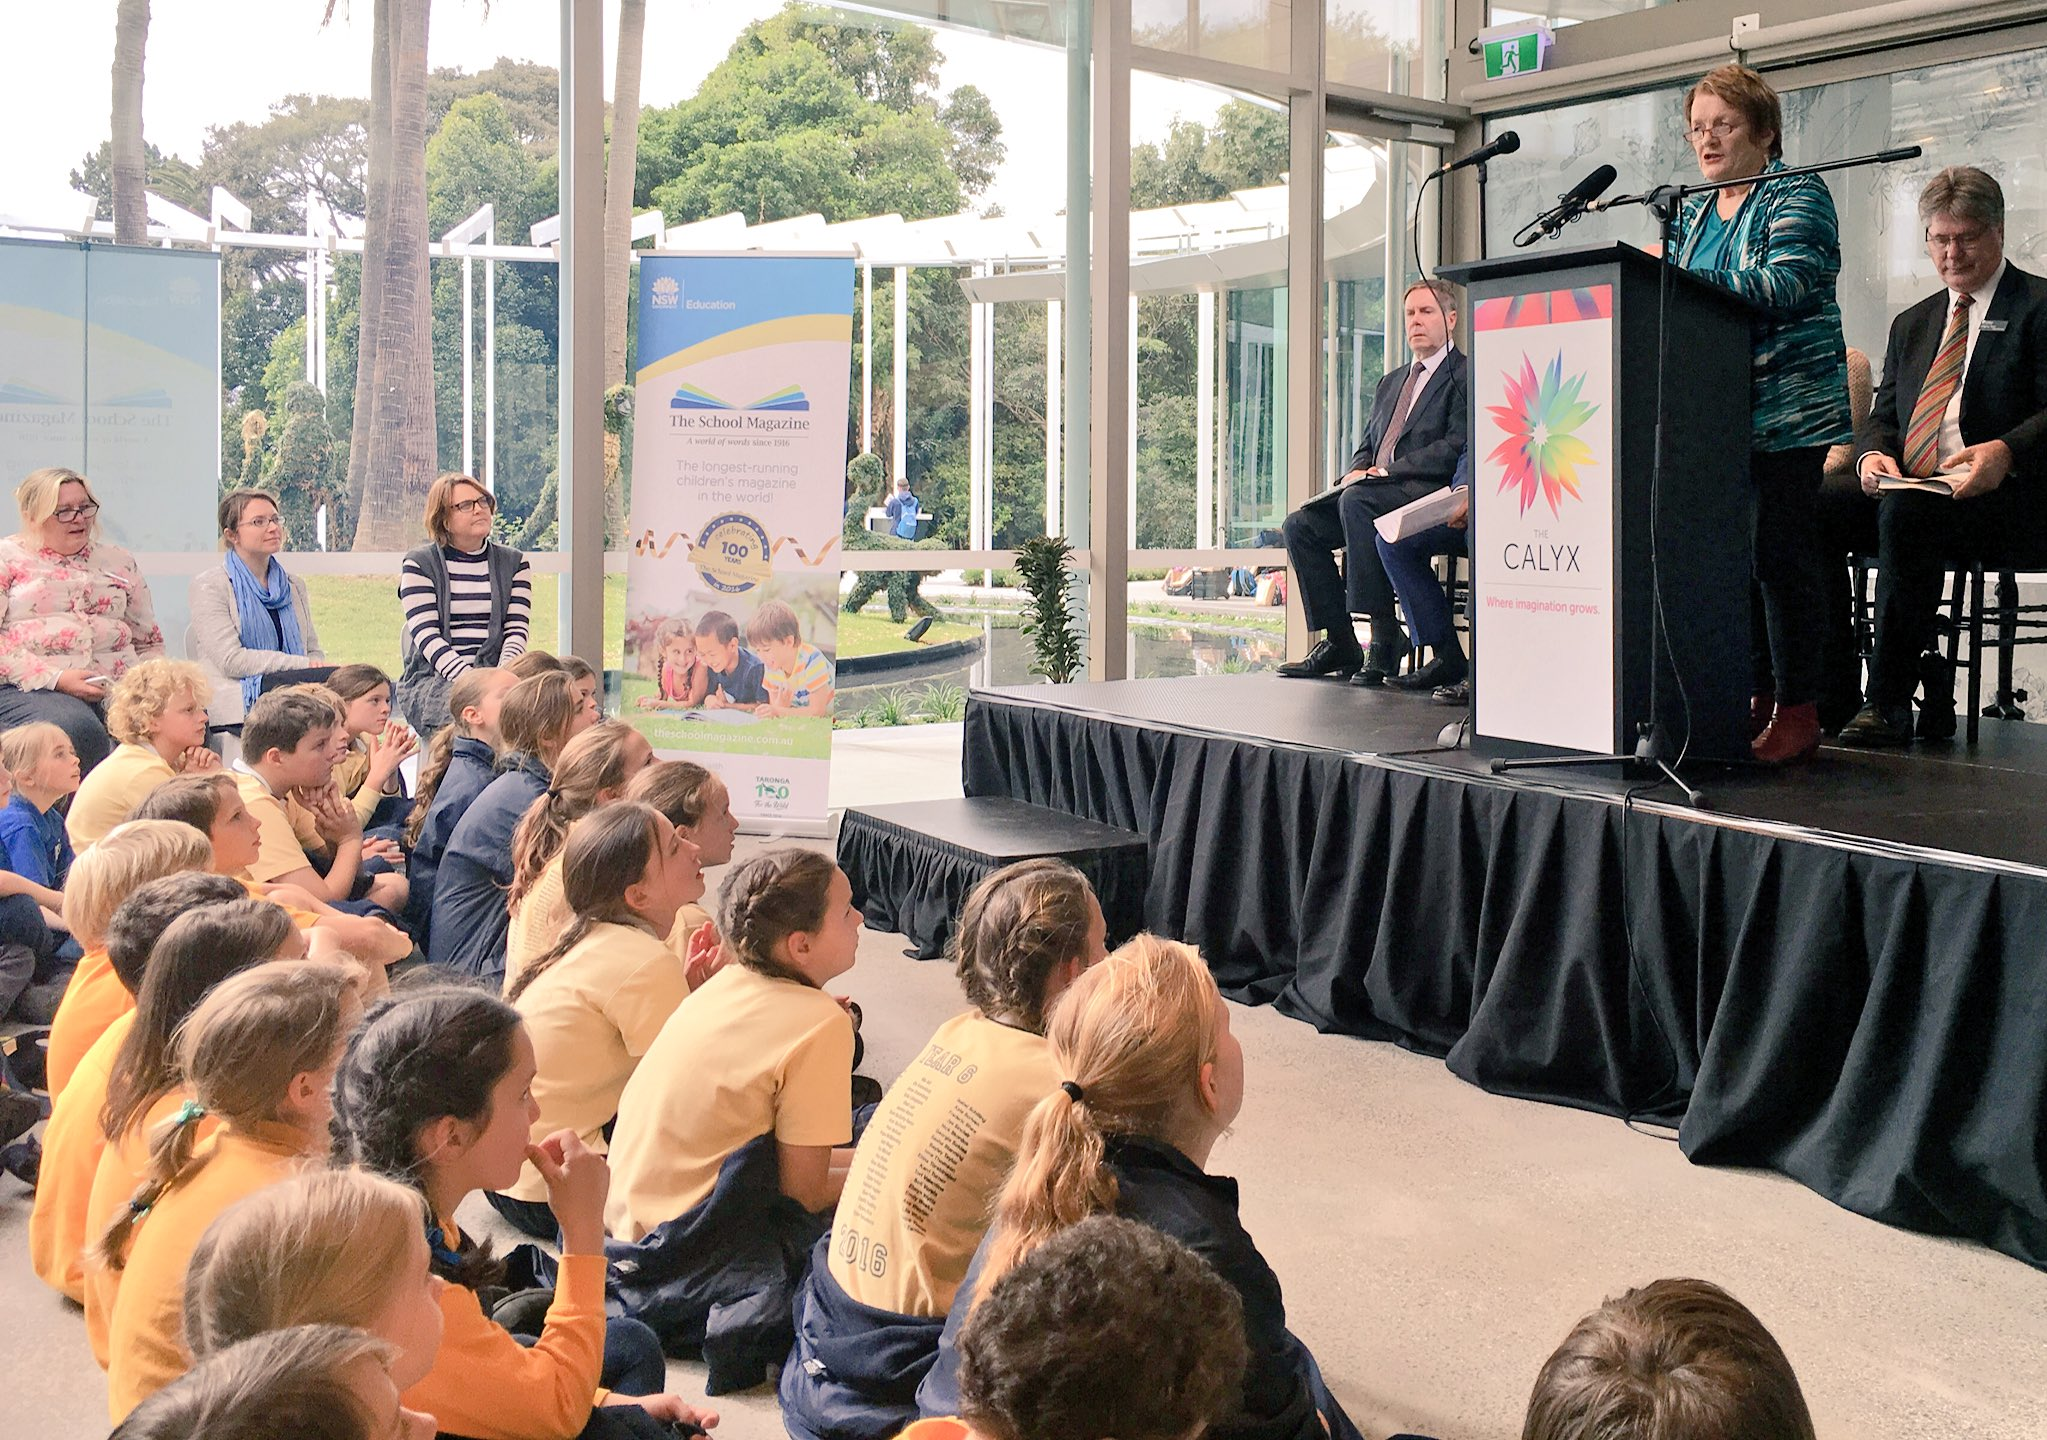 """@theschoolmag is about words, story & inspiration"" - Libby Gleeson AM #EDWEEKNSW #nsweducation https://t.co/SKLgVxAG5X"